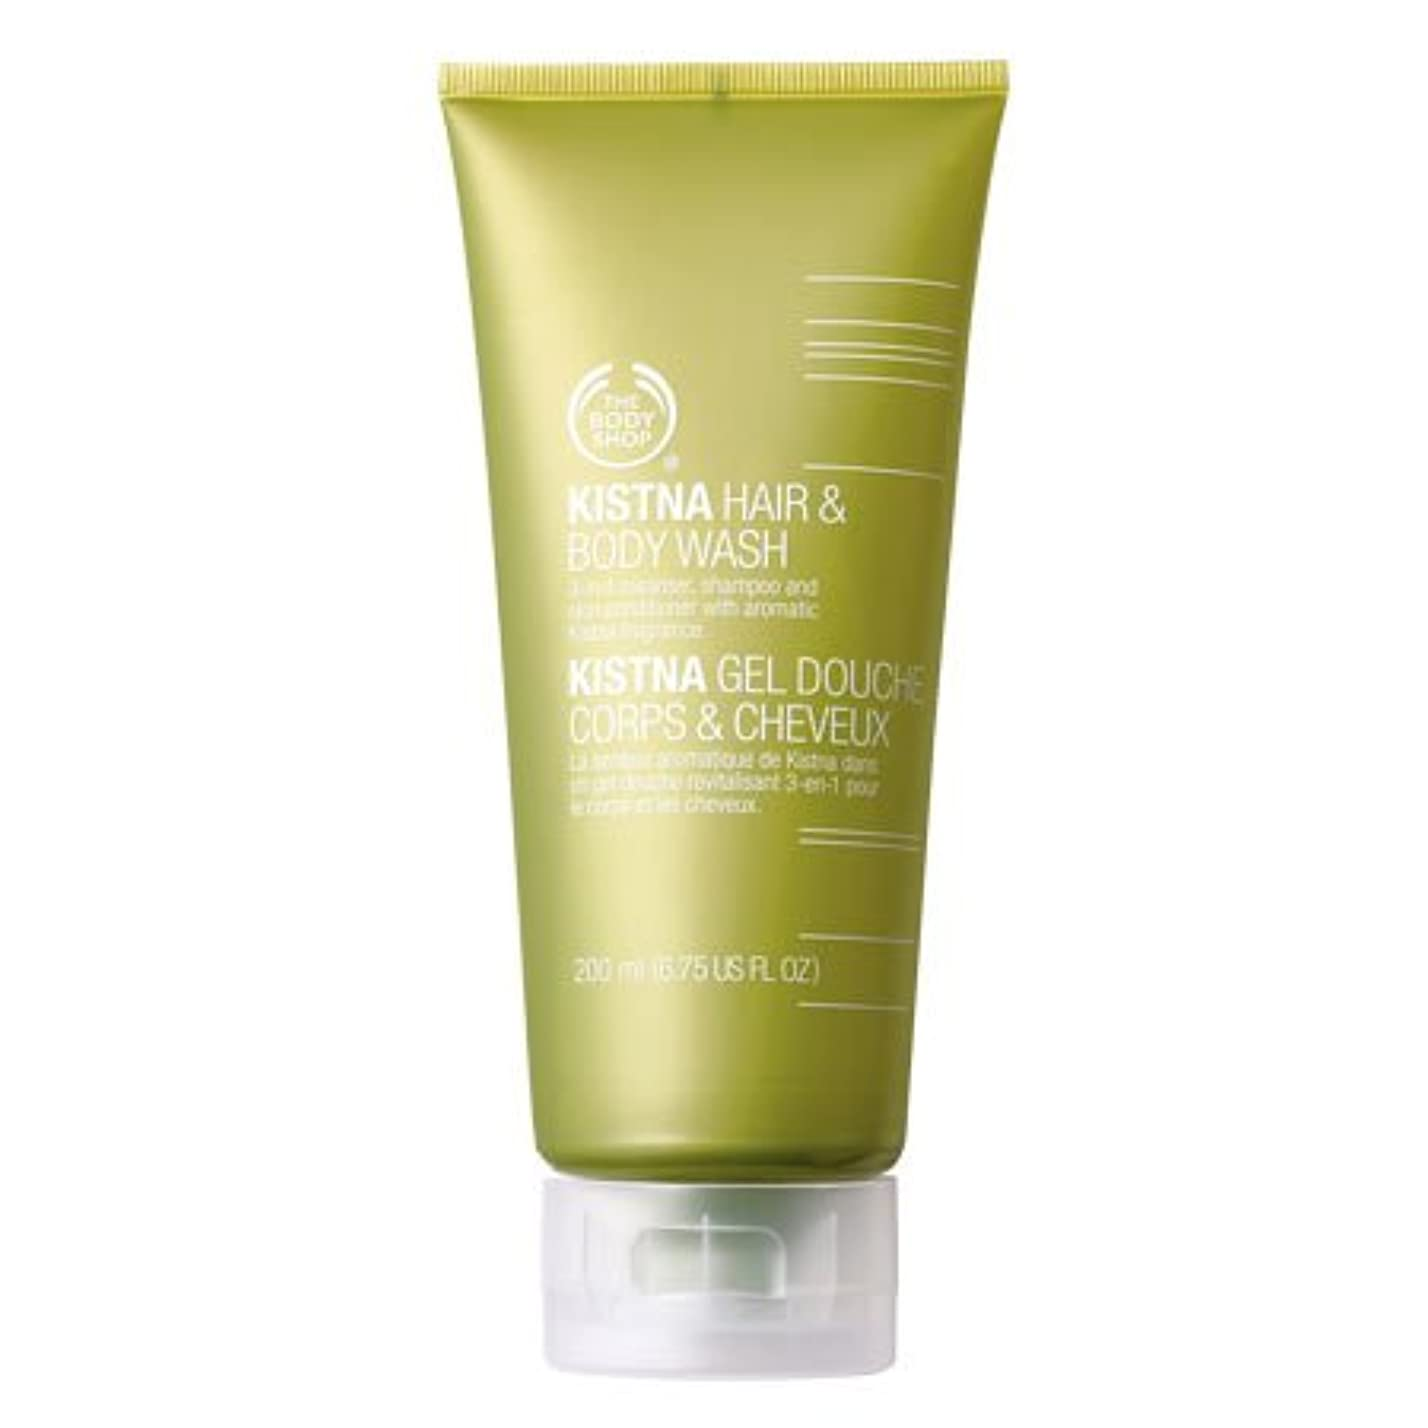 試す印をつけるスタックThe Body Shop Kistna Hair & Body Wash - 6.75 Fl oz(200ml)